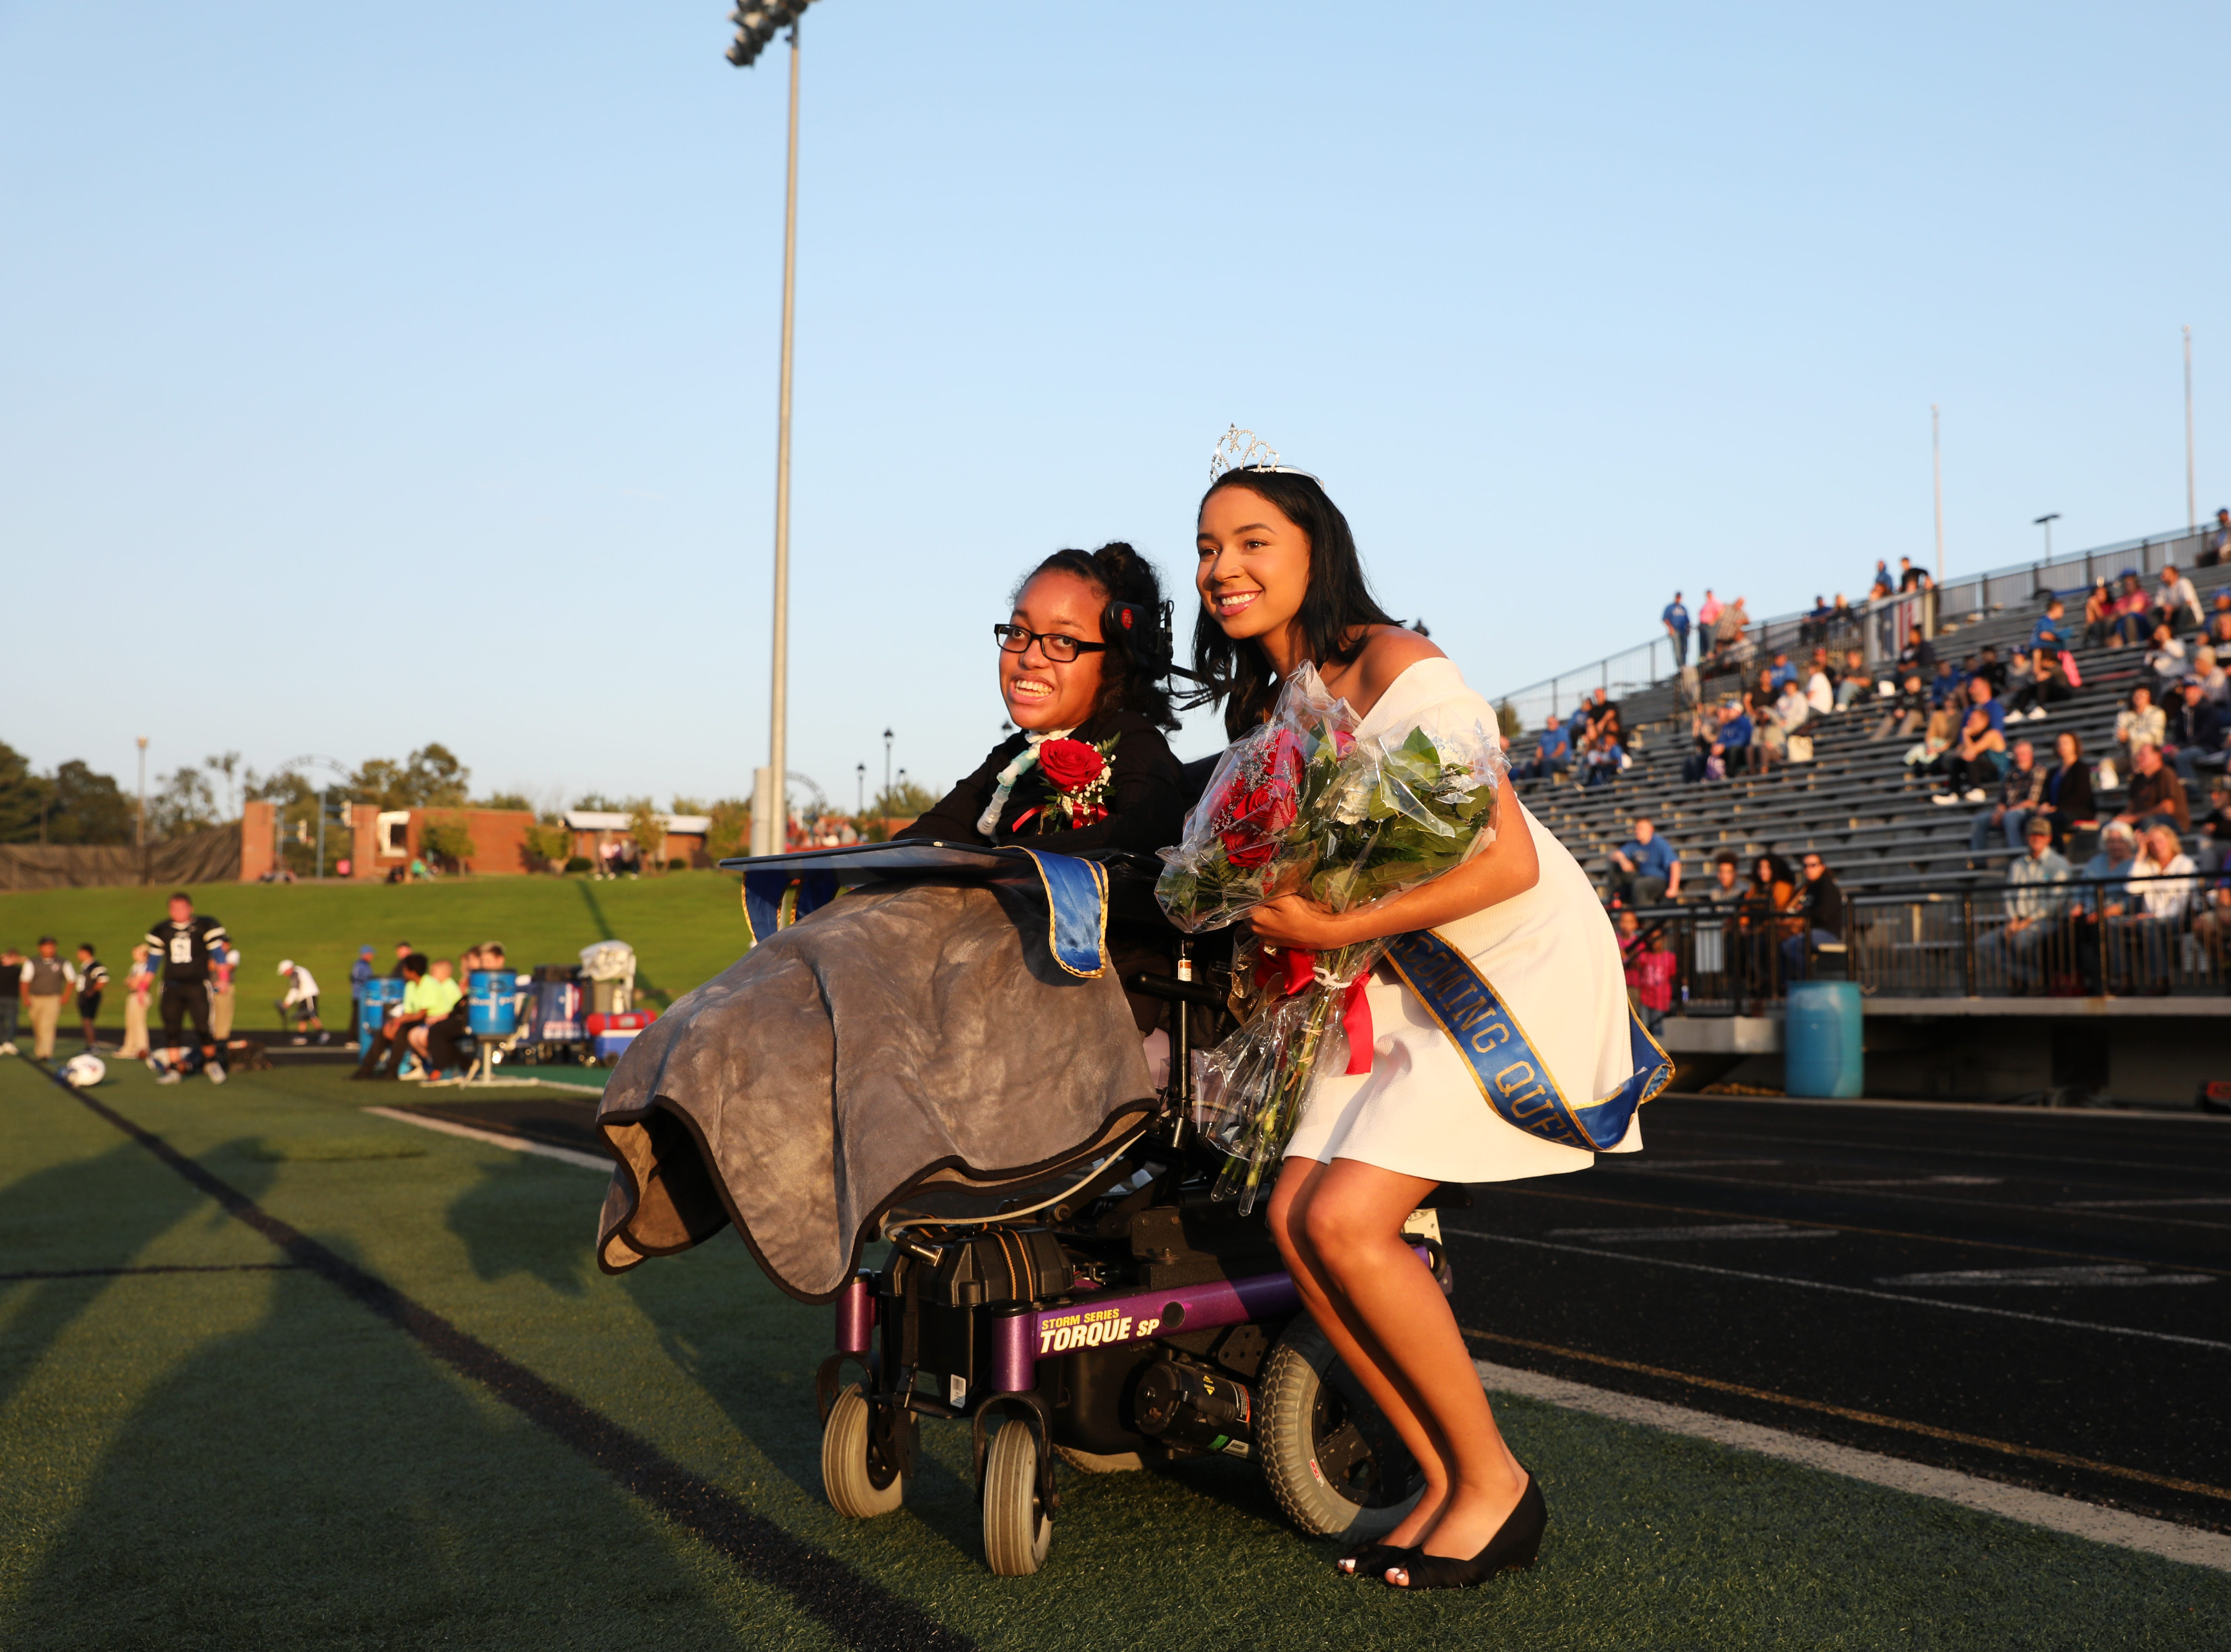 2018 homecoming queen Shalen Johnson poses for a picture with 2017 homecoming queen Destani Duling.